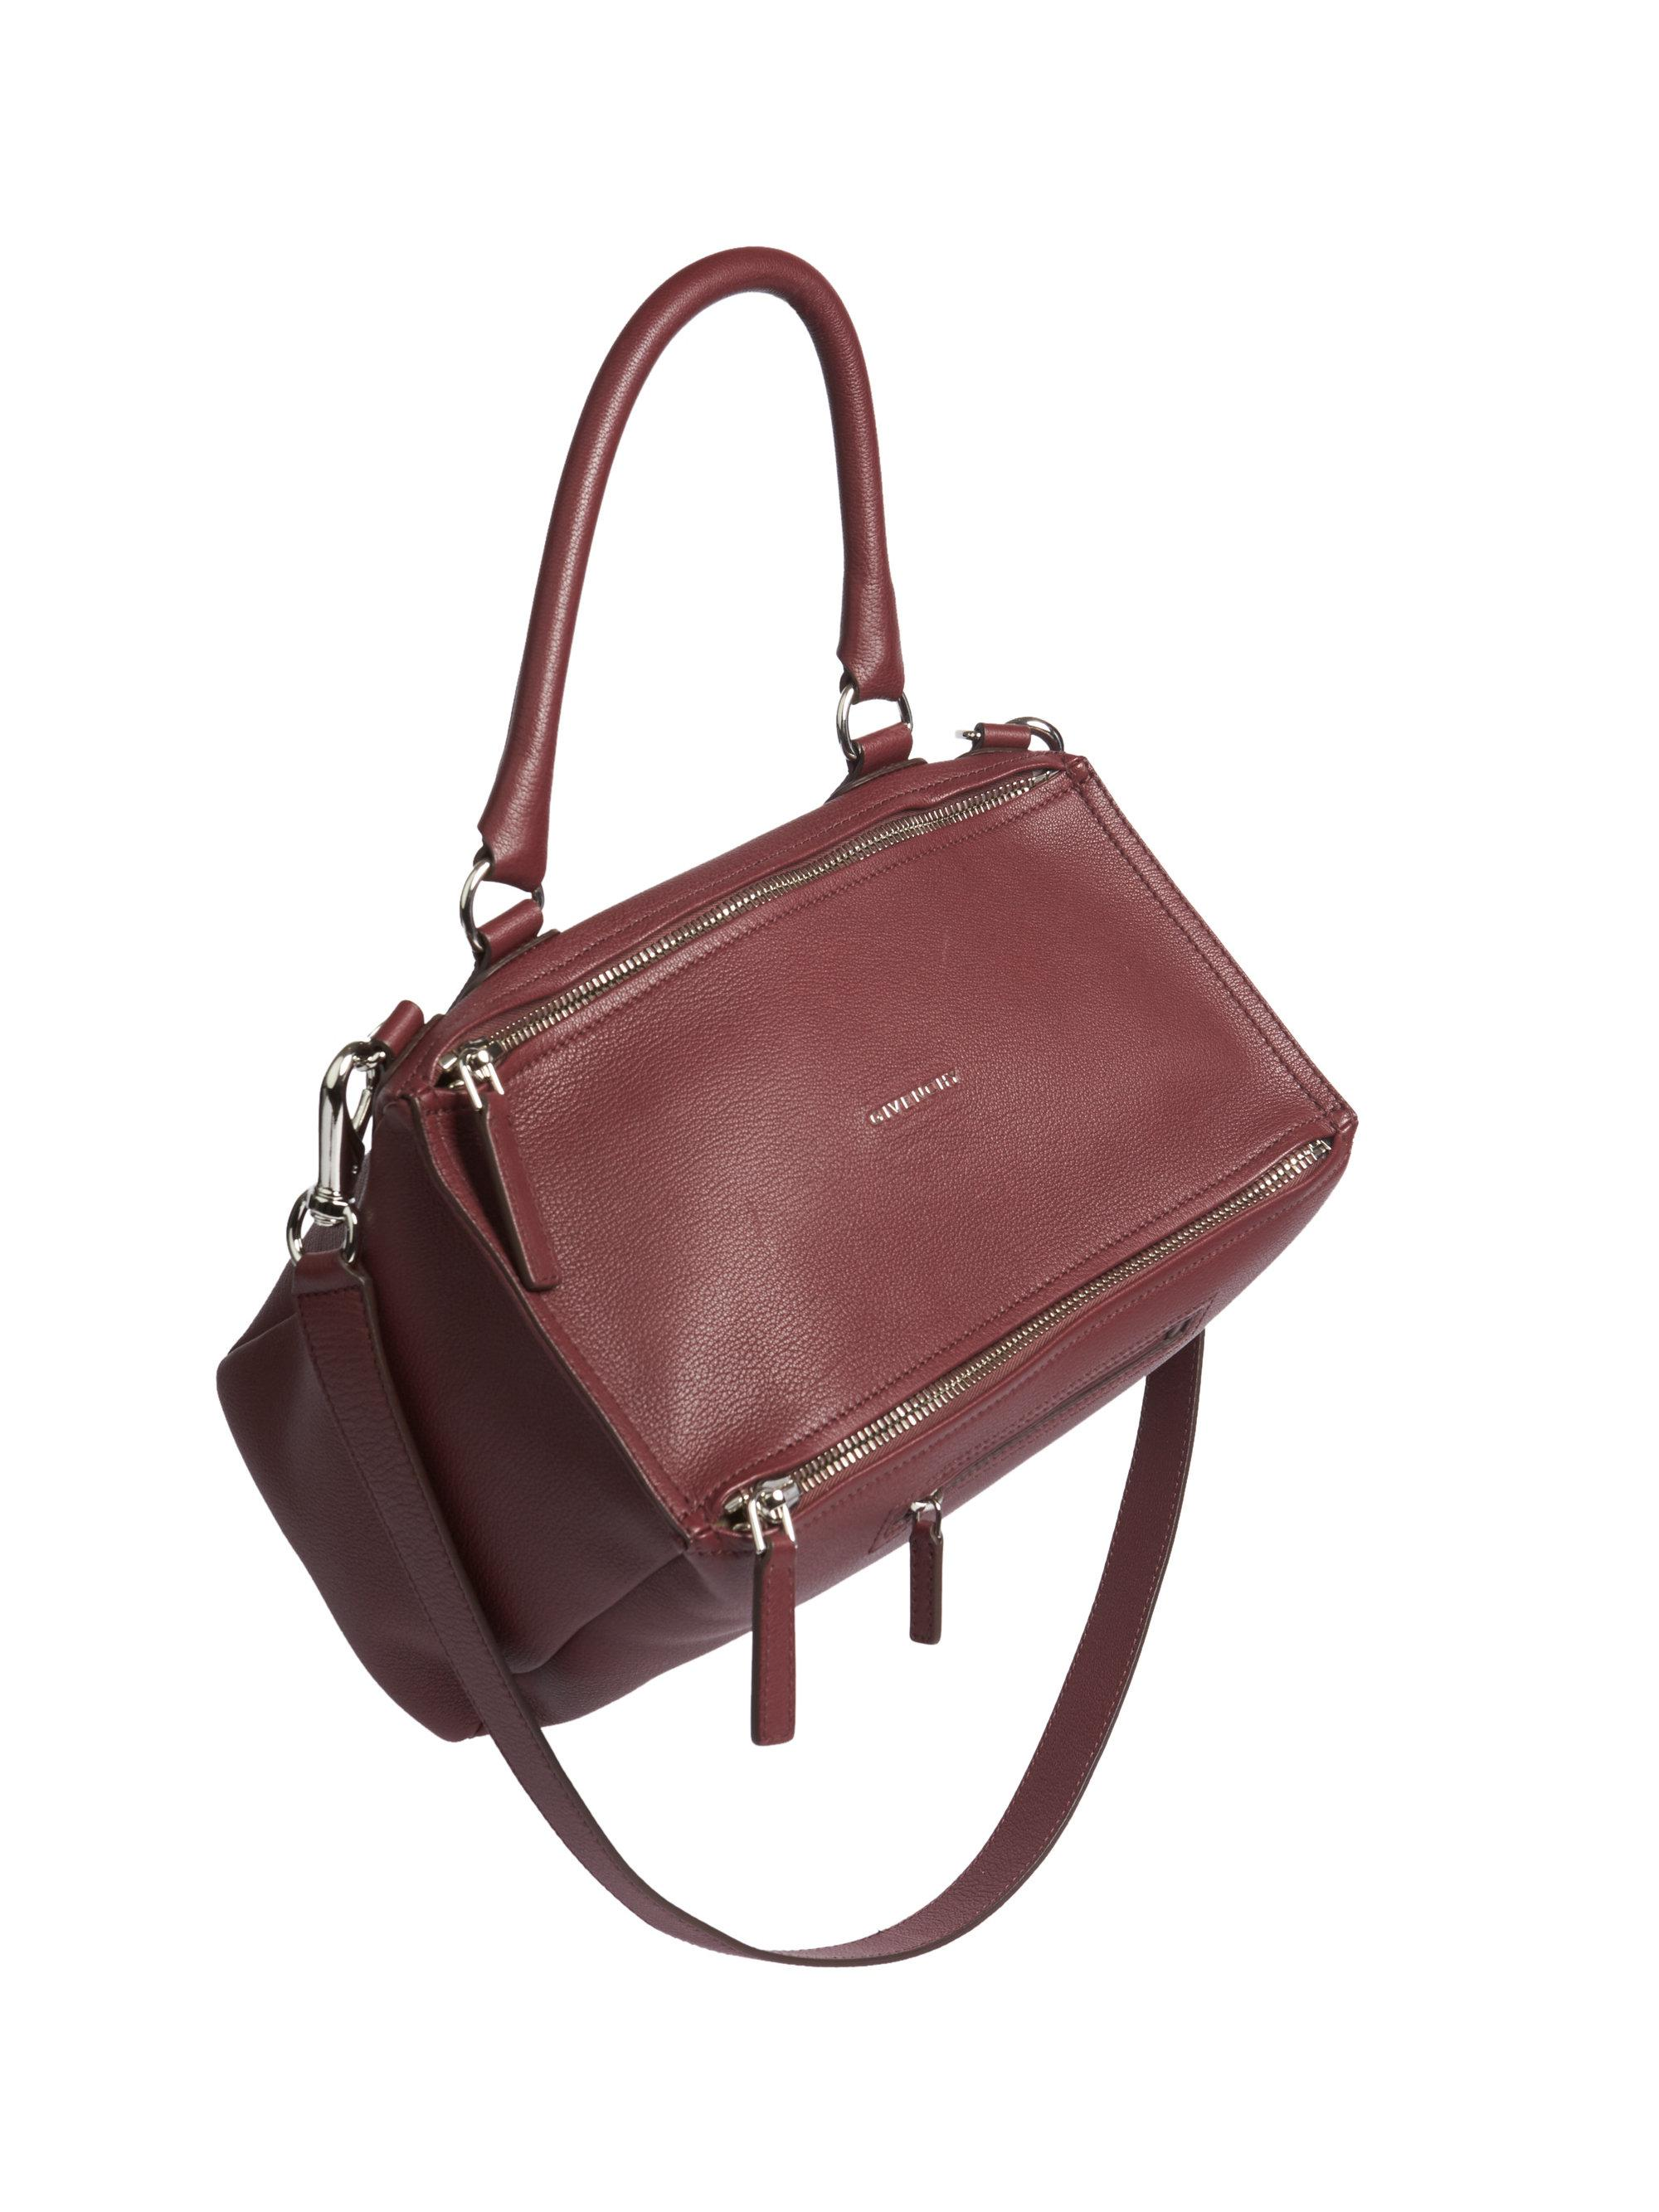 9f246f2f43 Lyst - Givenchy Pandora Medium Leather Shoulder Bag in Red - Save ...